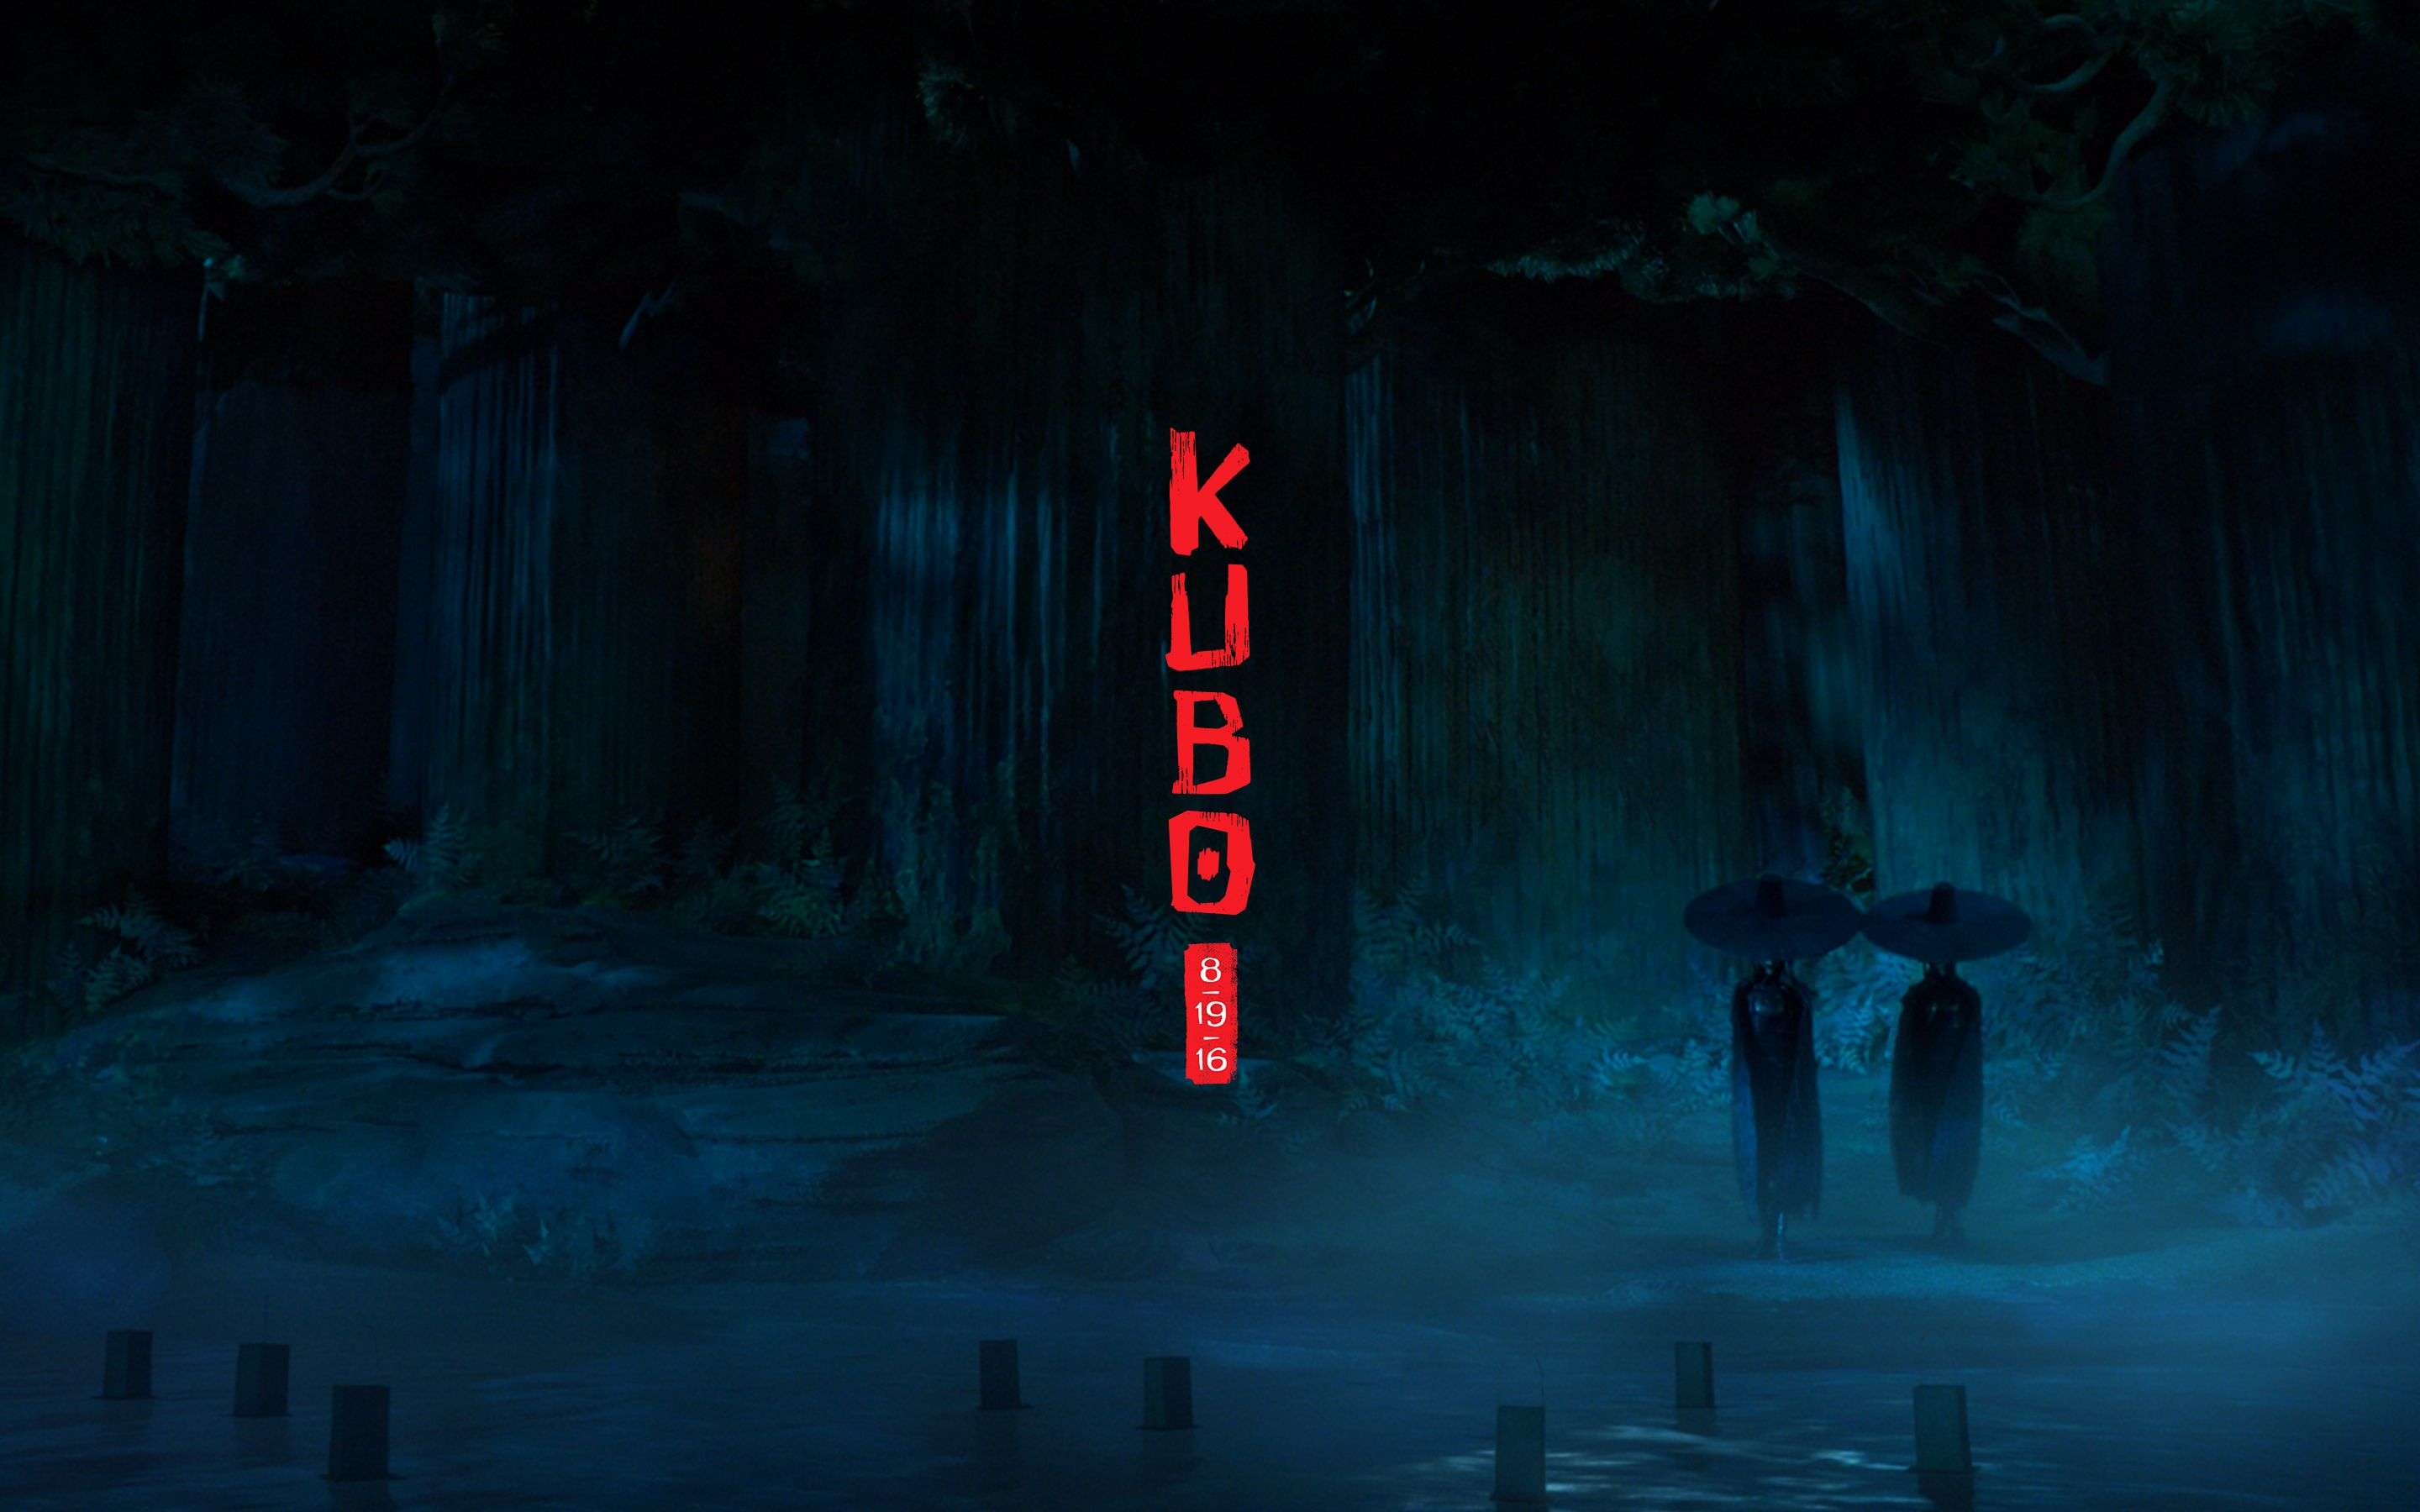 Kubo And The Two Strings Wallpaper Downloads